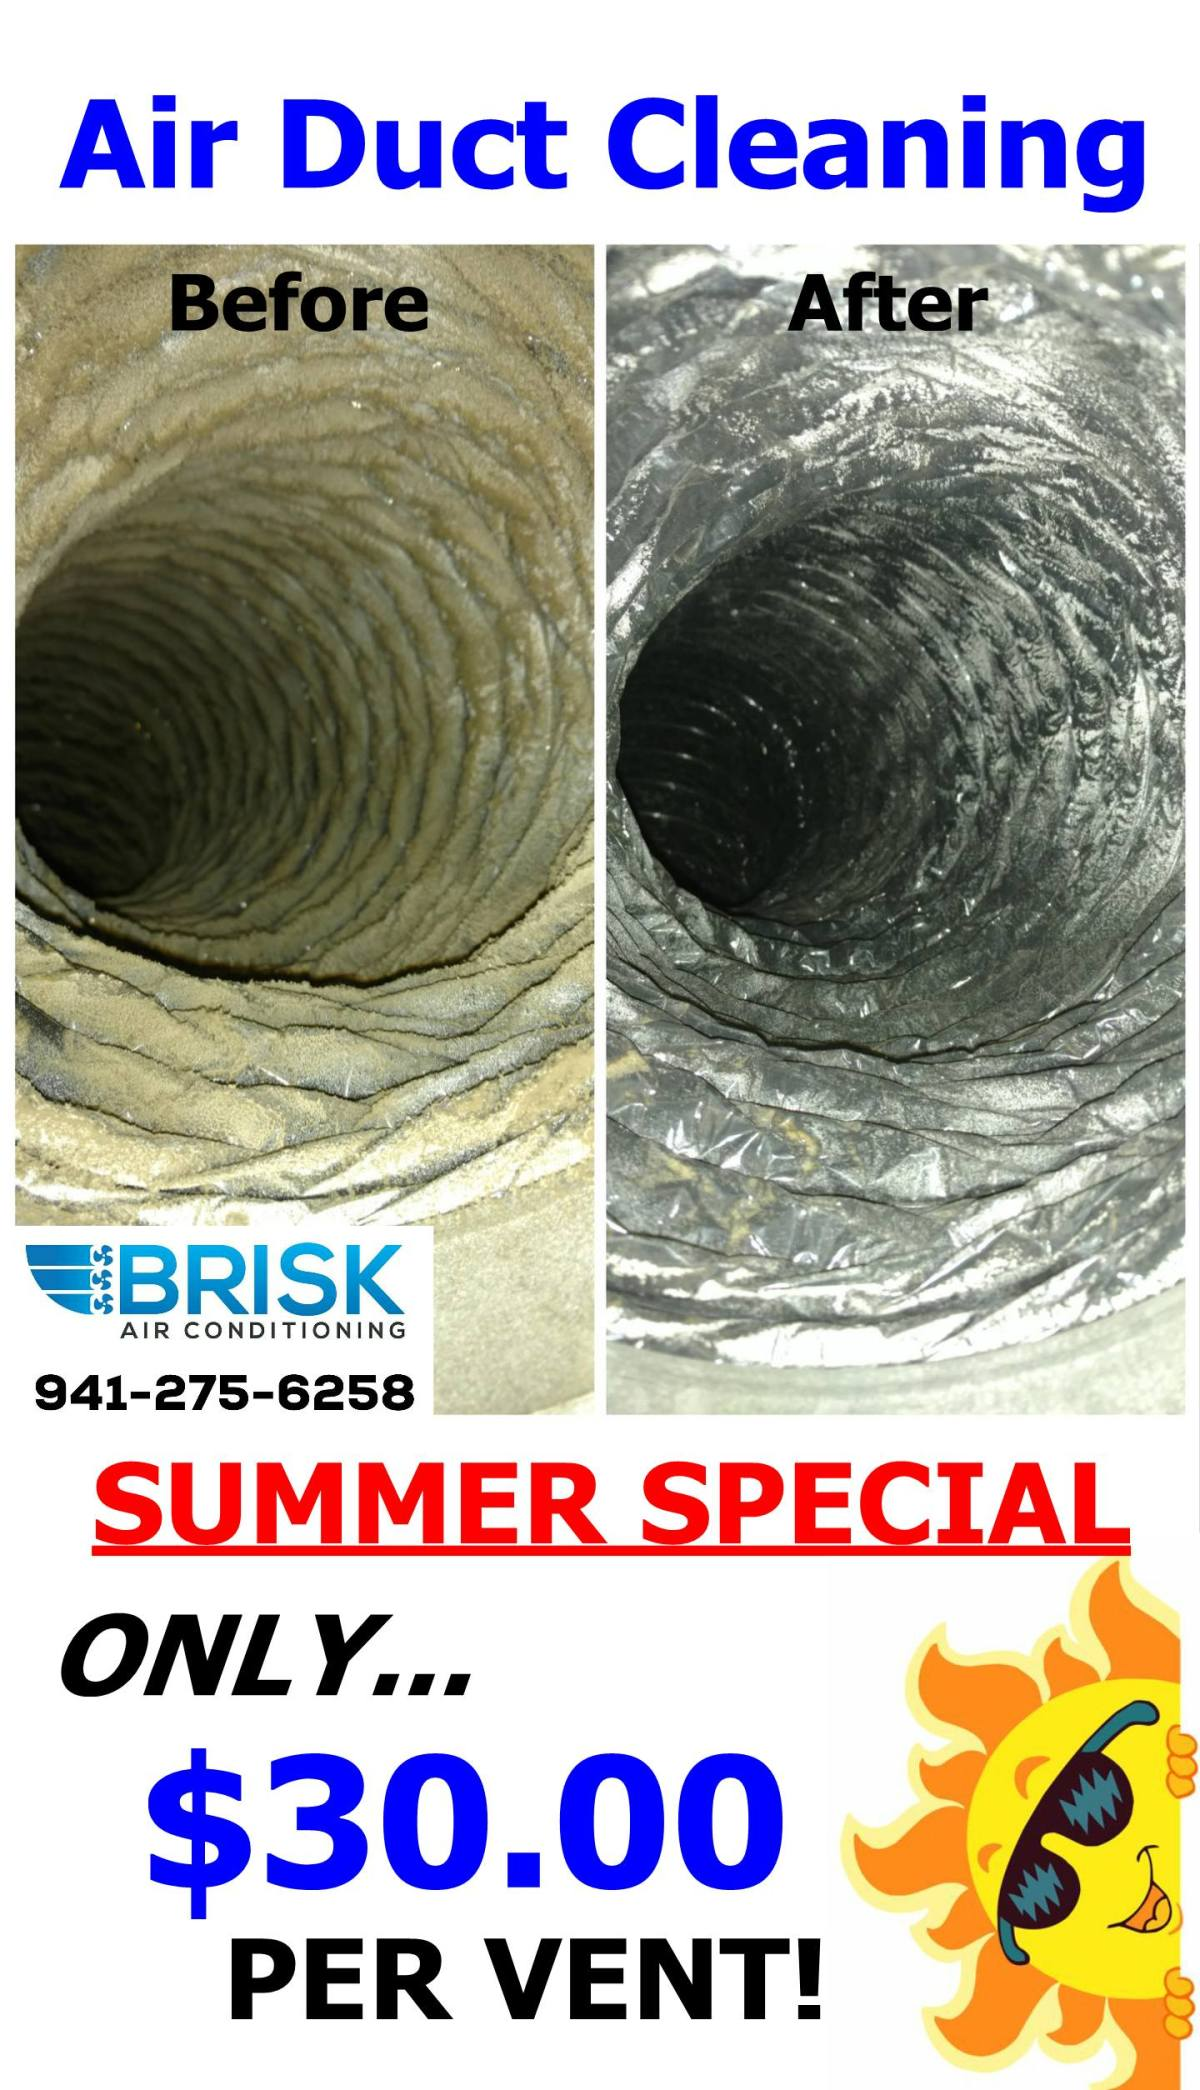 Brisk Air Conditioning Duct Cleaning Special